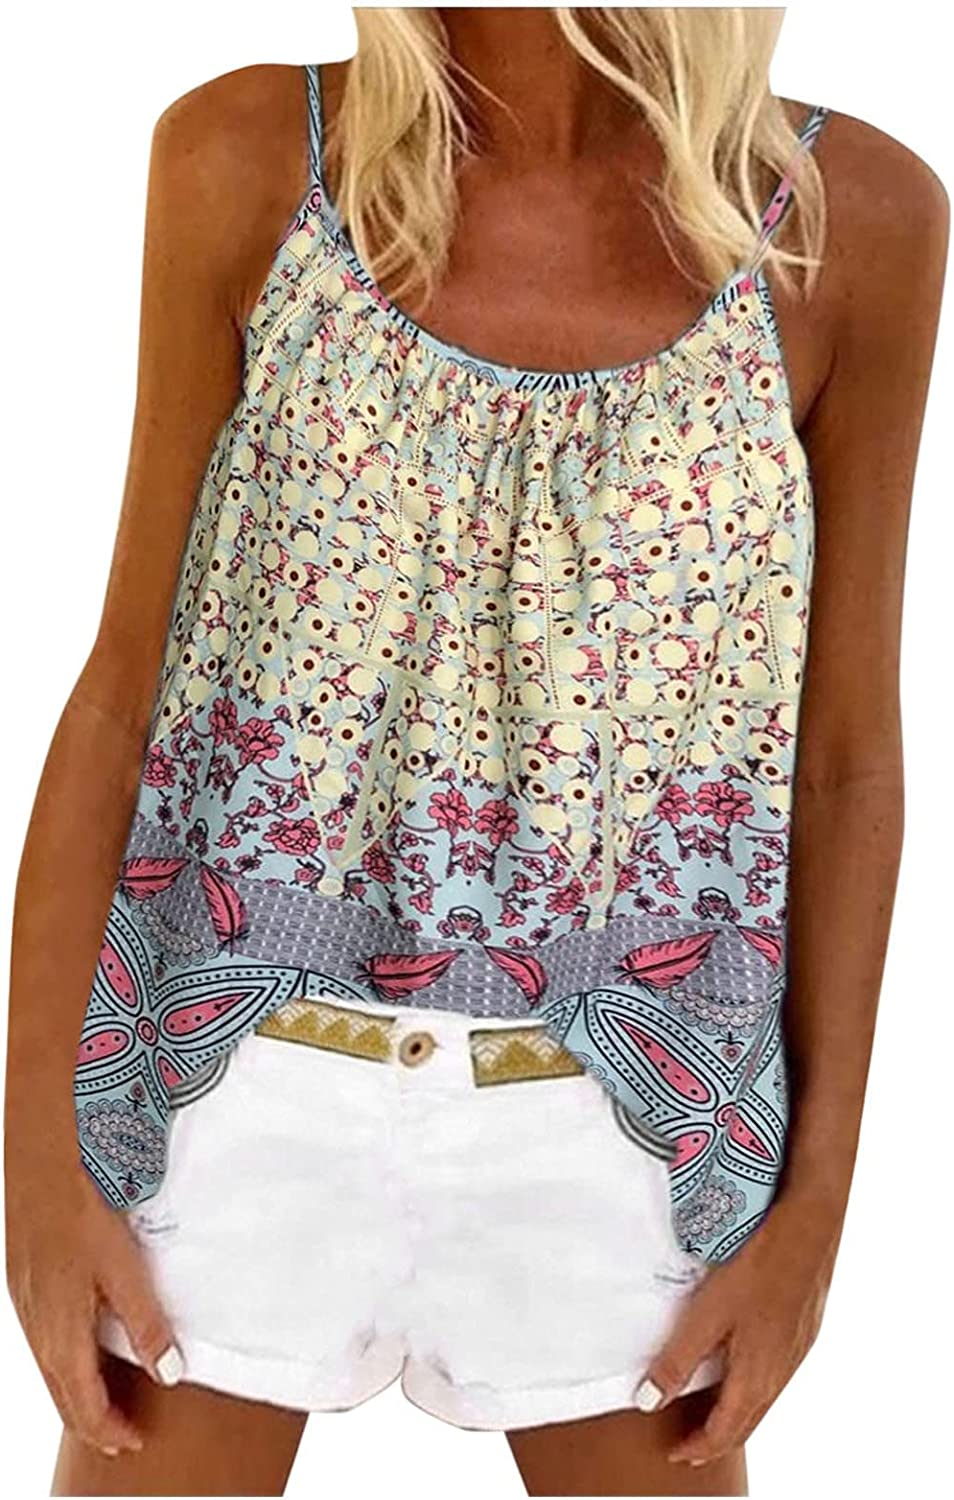 NREALY Fashion Women Sleeveless Vest Floral Print Mother's Day Summer Sling Tops